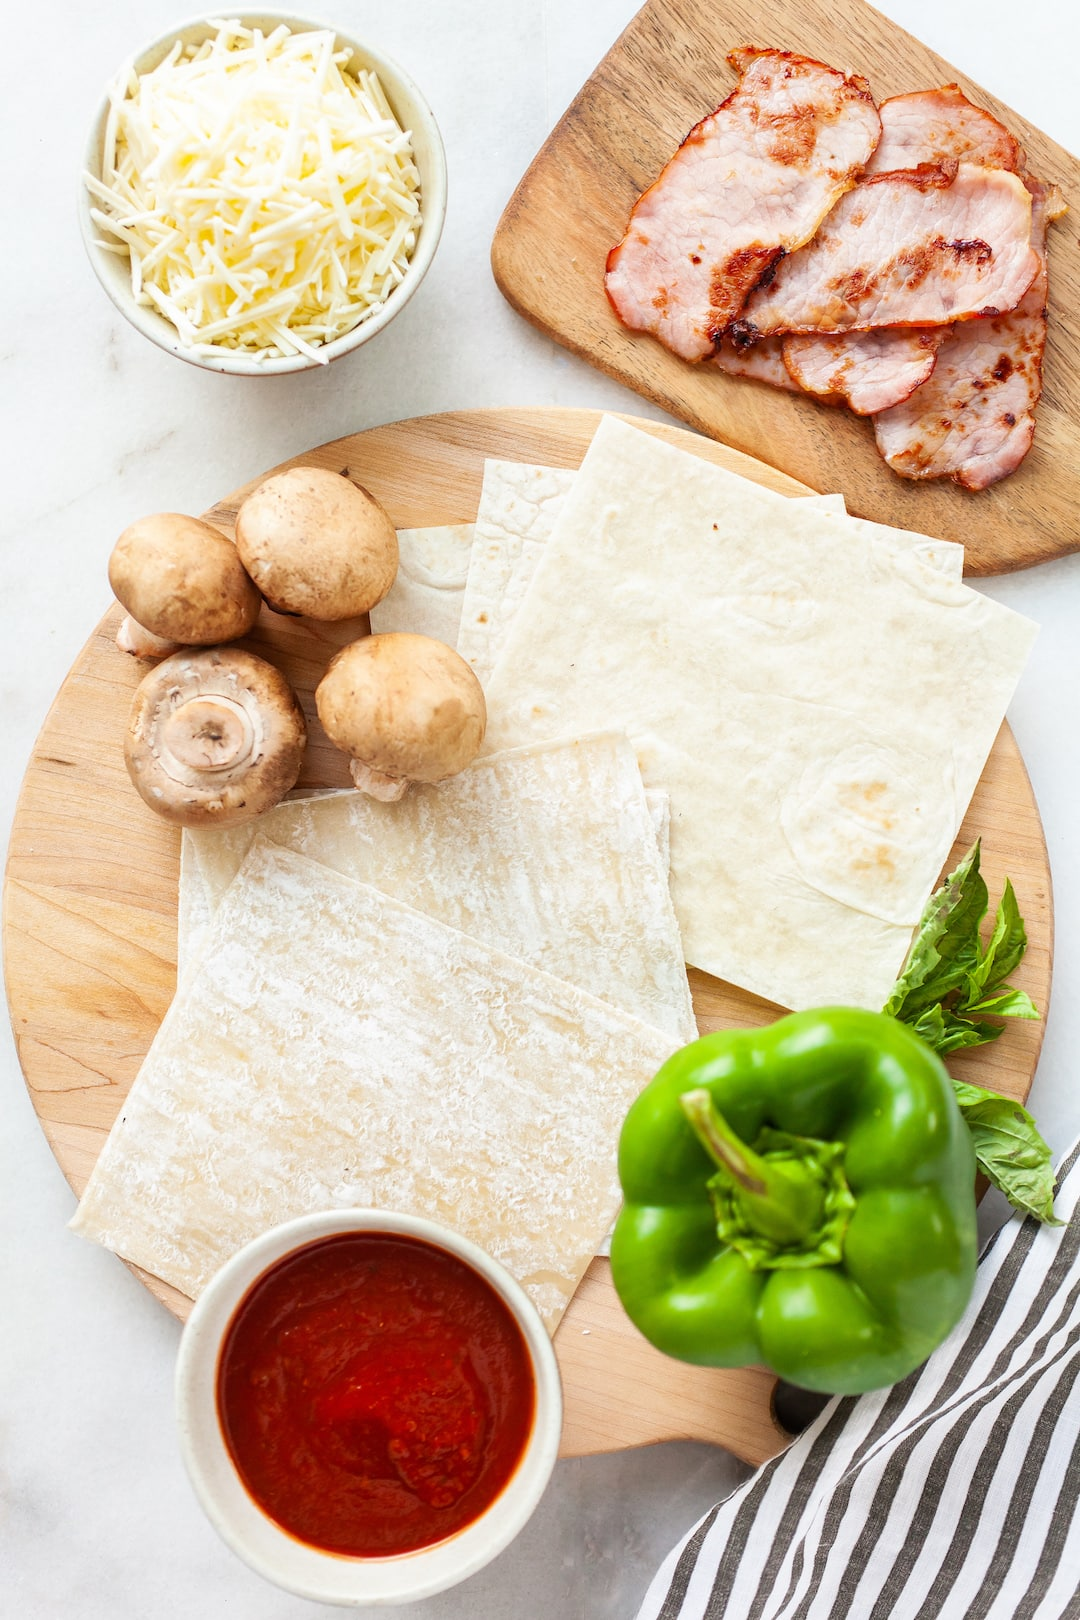 Image of ingredients for air fryer pizza rolls